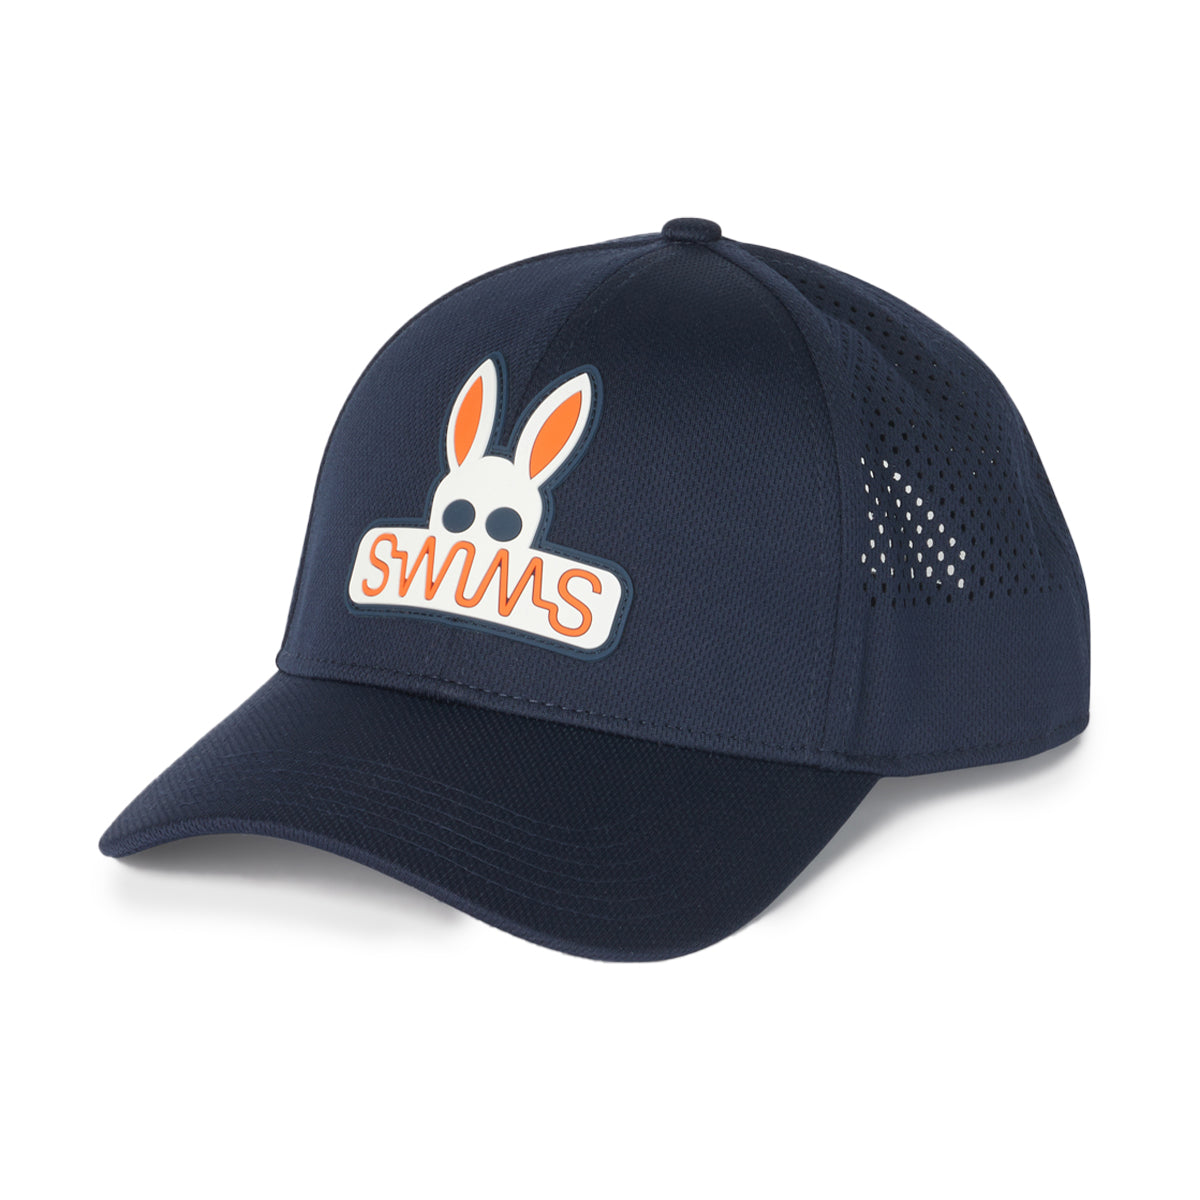 Psycho Bunny x SWIMS Baseball Cap - background::white,variant::navy